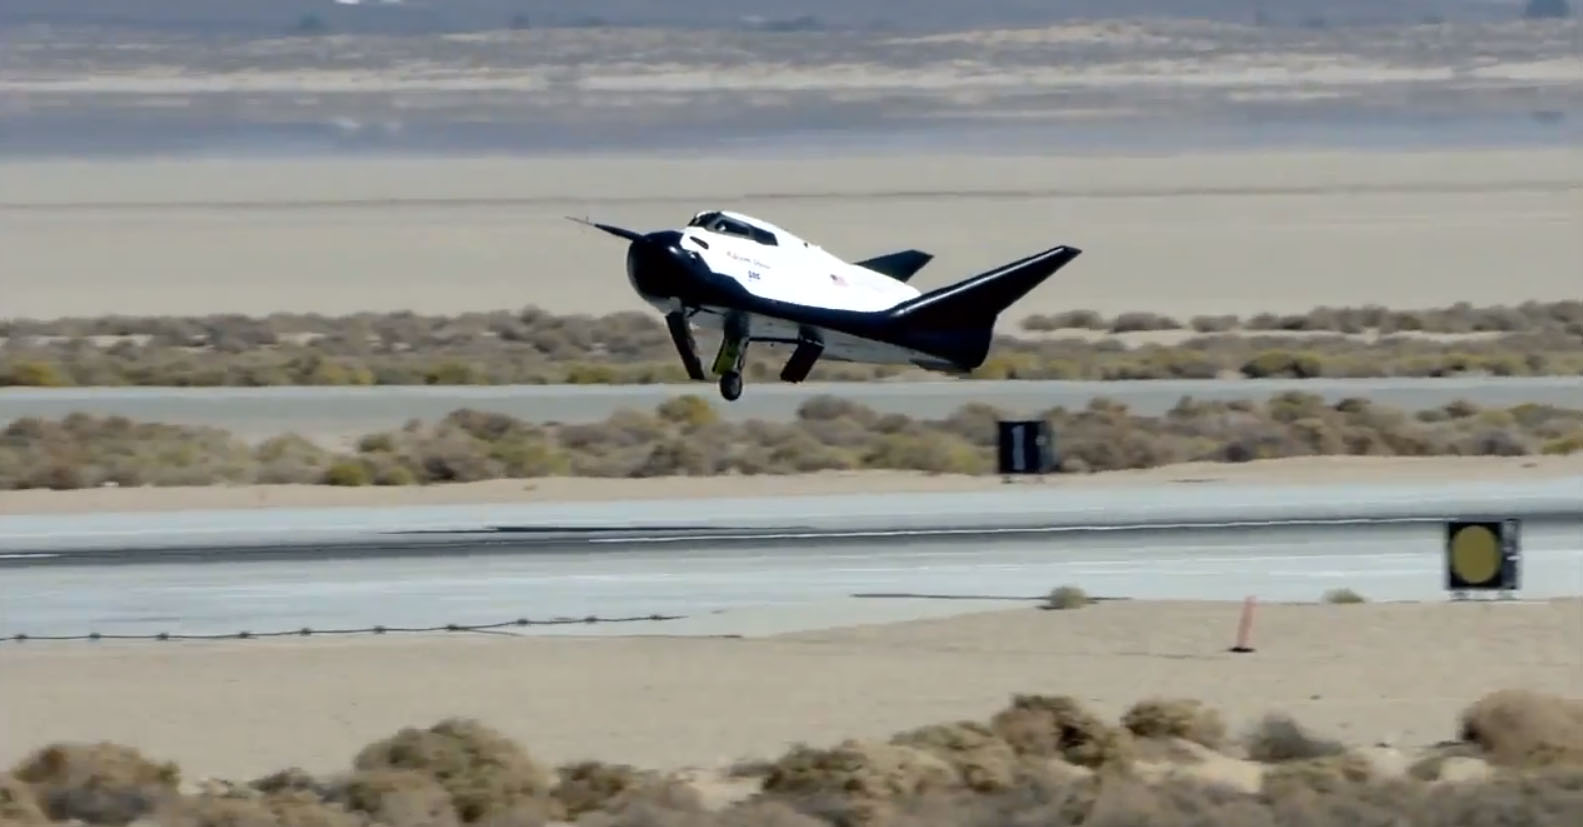 The private Dream Chaser space plane built by Sierra Nevada Corp. is seen landing with its left landing gear not deployed properly in this still from an Oct. 26, 2013 unmanned drop test at Edwards Air Force Base in California.